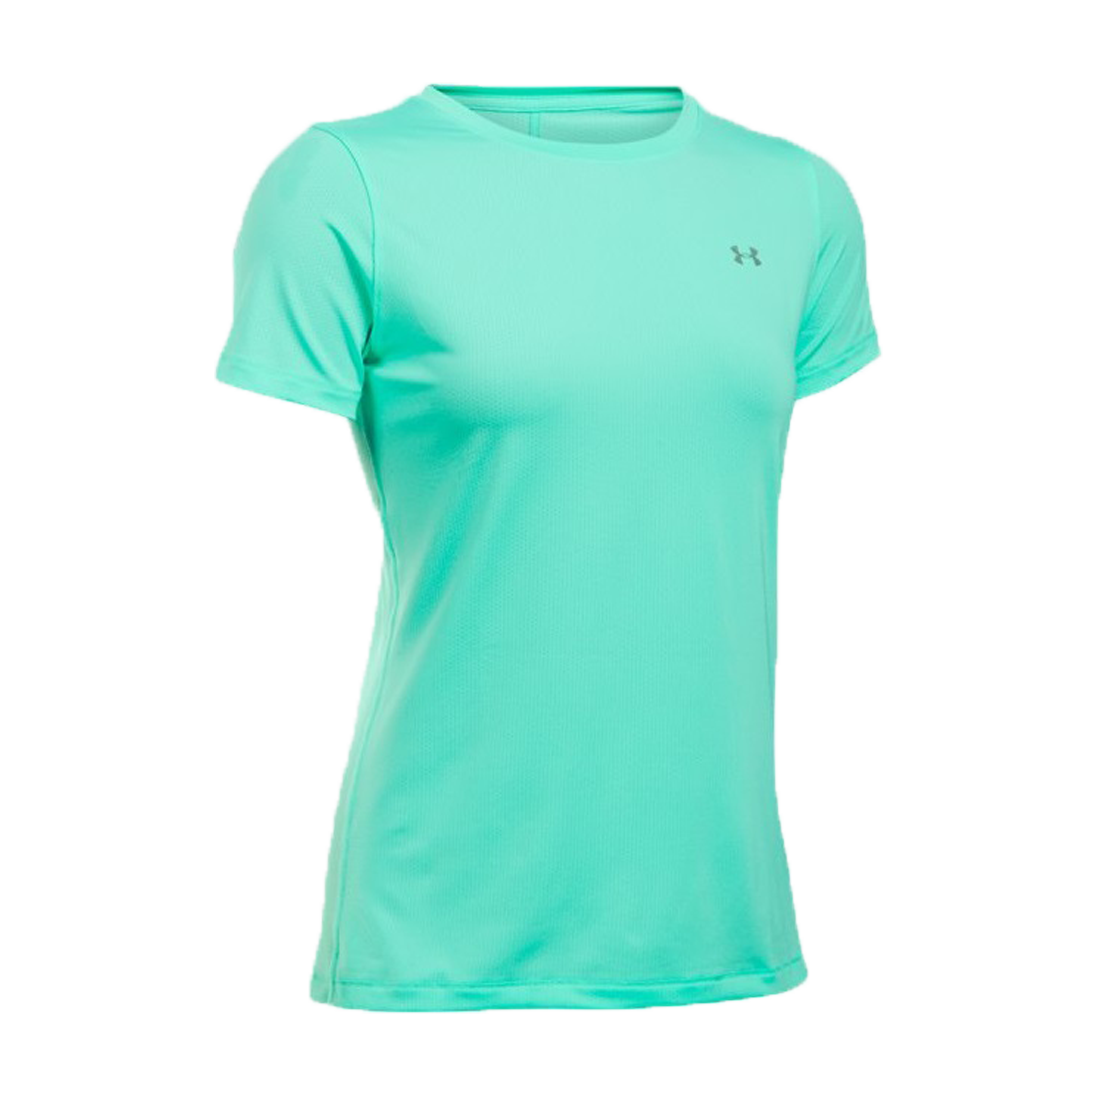 T shirt sport under armour vert eau femme